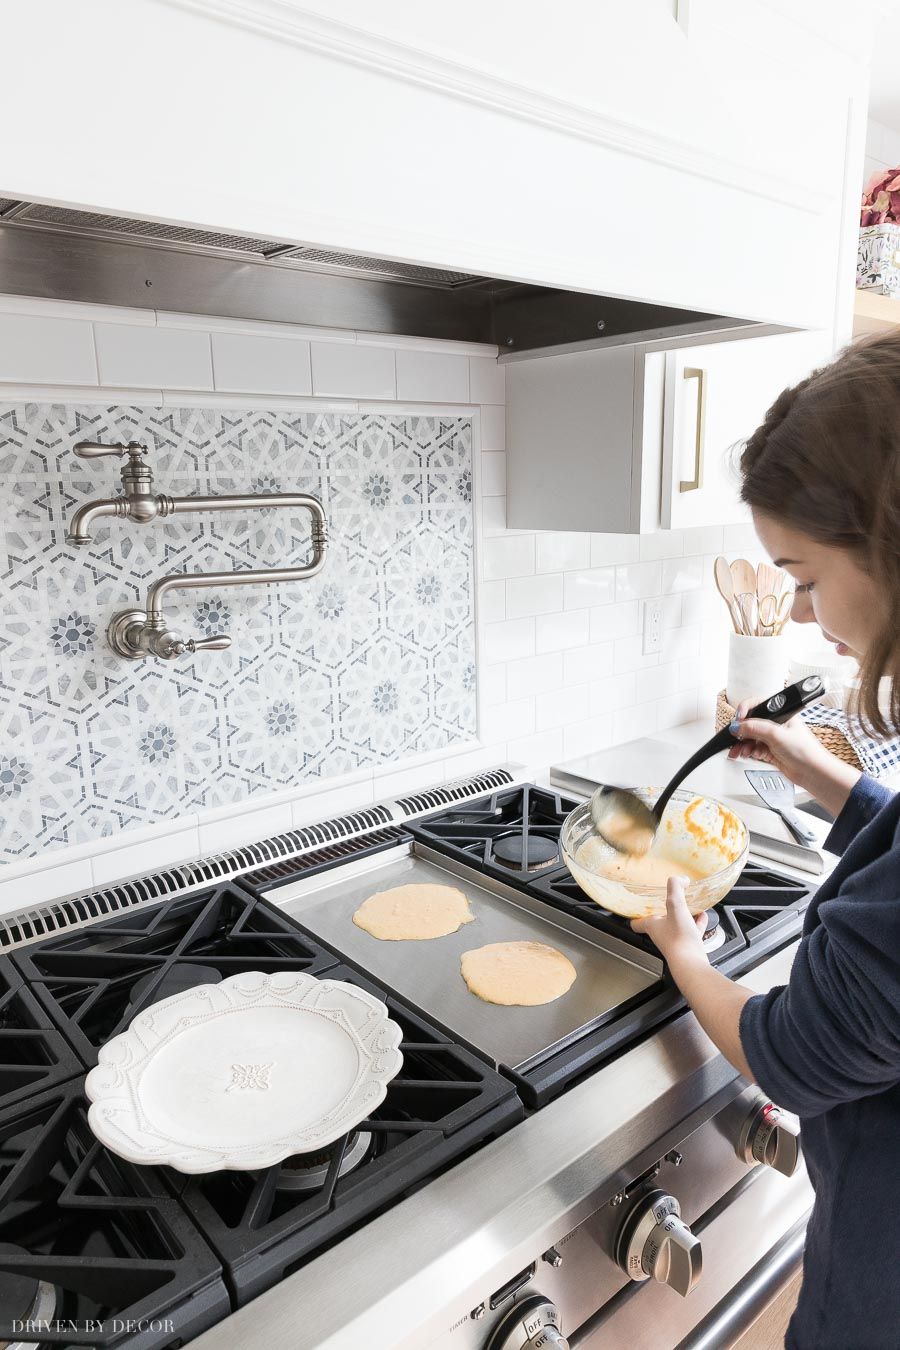 Love having a griddle built into our range! One of my favorite features of our new appliances!